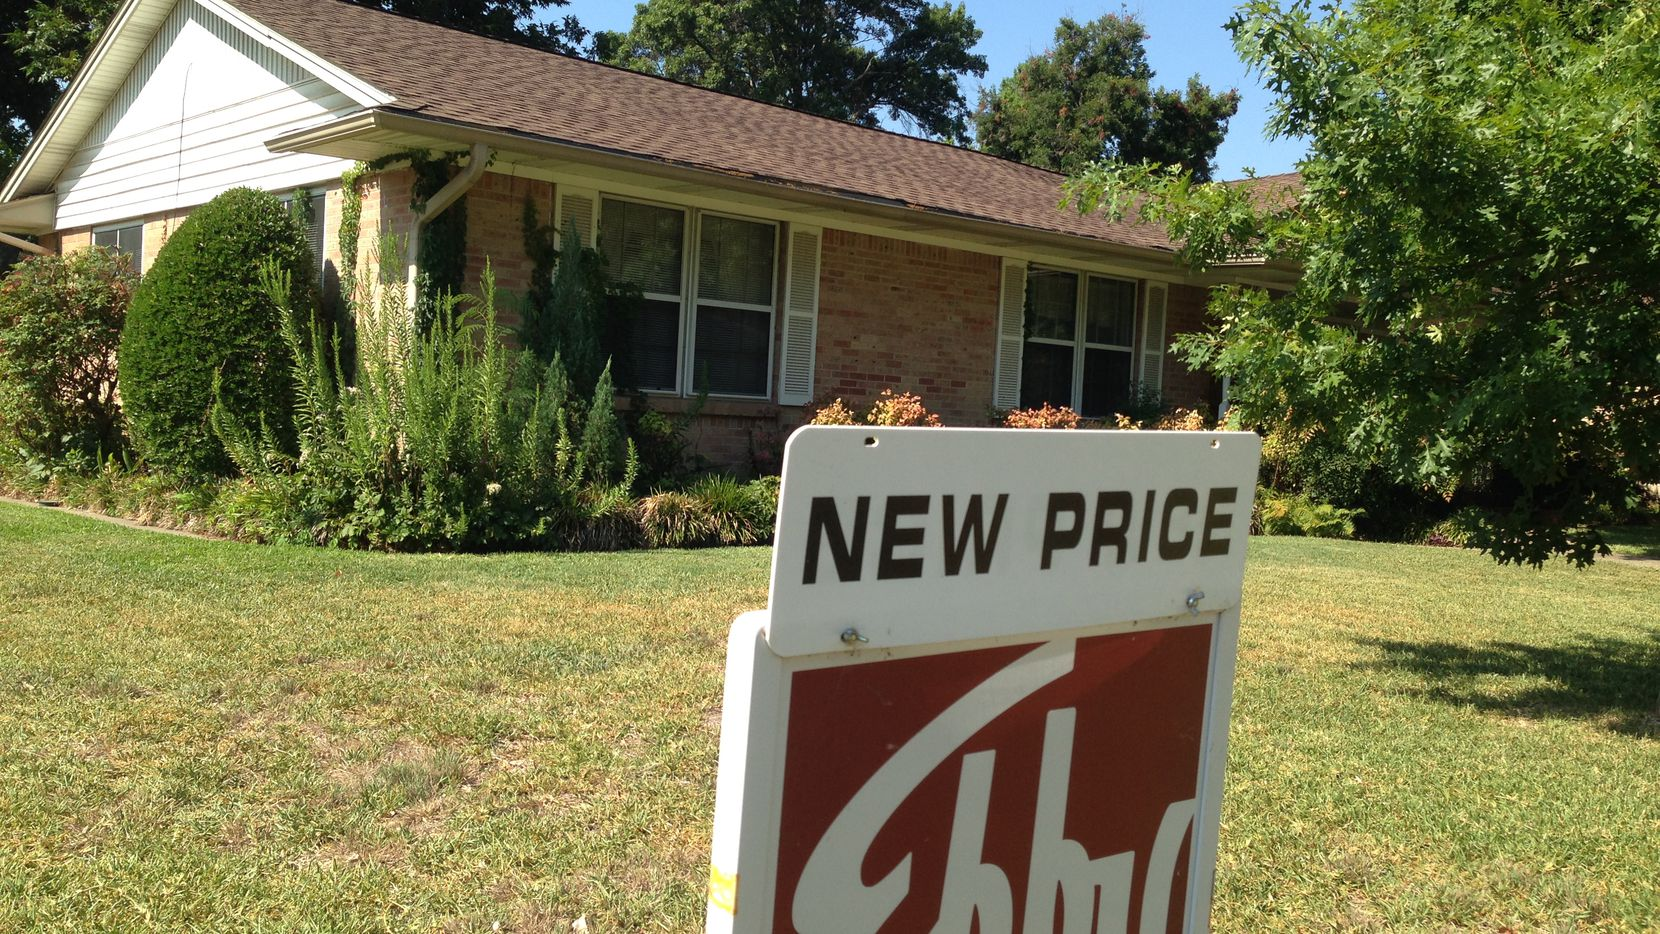 Economists say that the home market is showing signs of a reset around the U.S. and in the D-FW area.